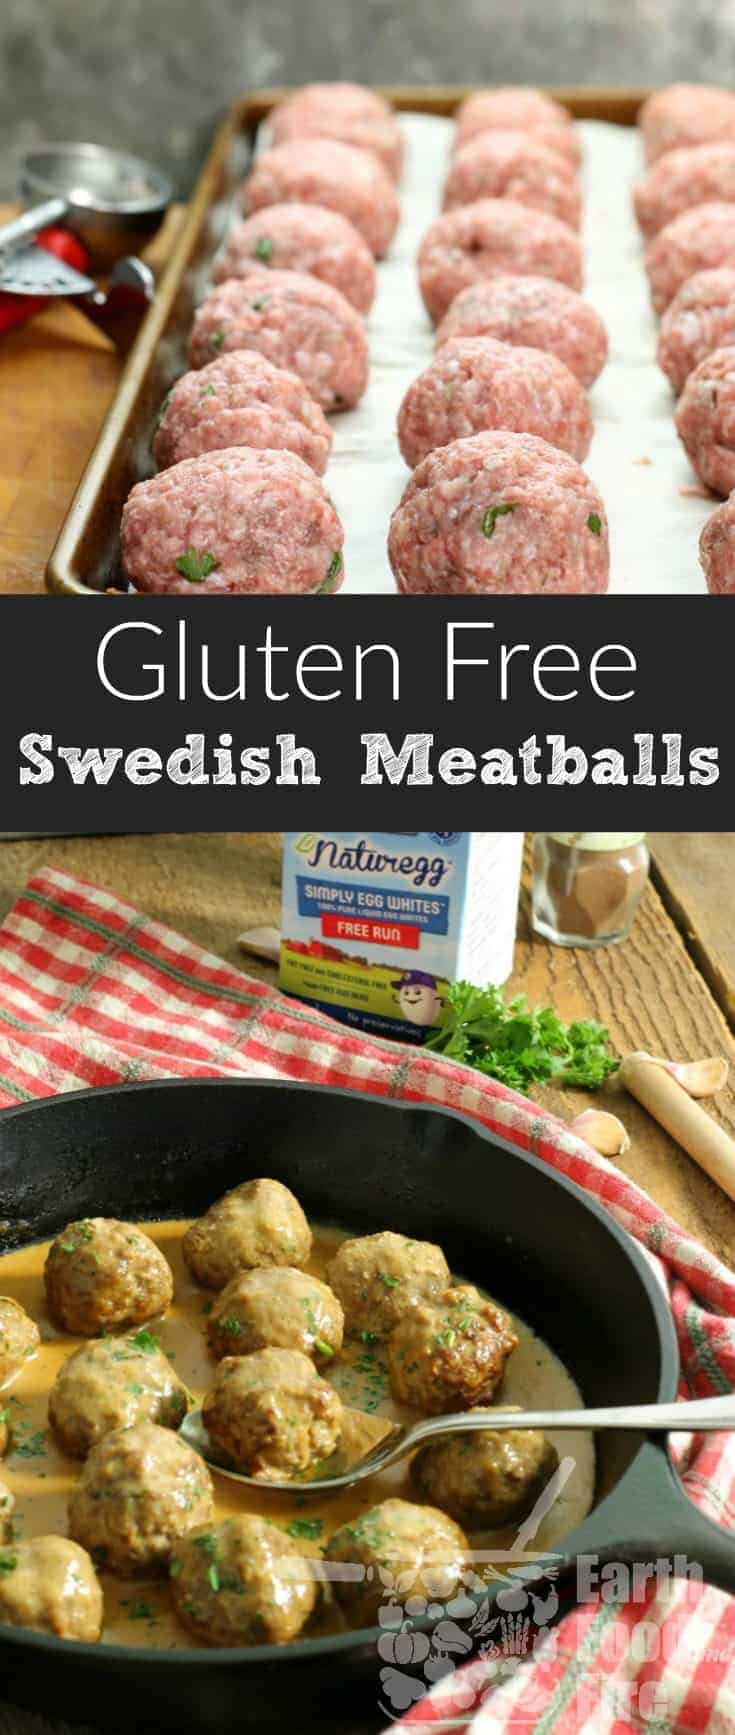 These freezer friendly gluten free Swedish meatballs made with @BurnbraeFarms Naturegg Simply Egg Whites. Stock your freezer with this healthy meal option ready in just 30 minutes! #SimpleResolutions #sponsored #swedishmeatballs #glutenfree